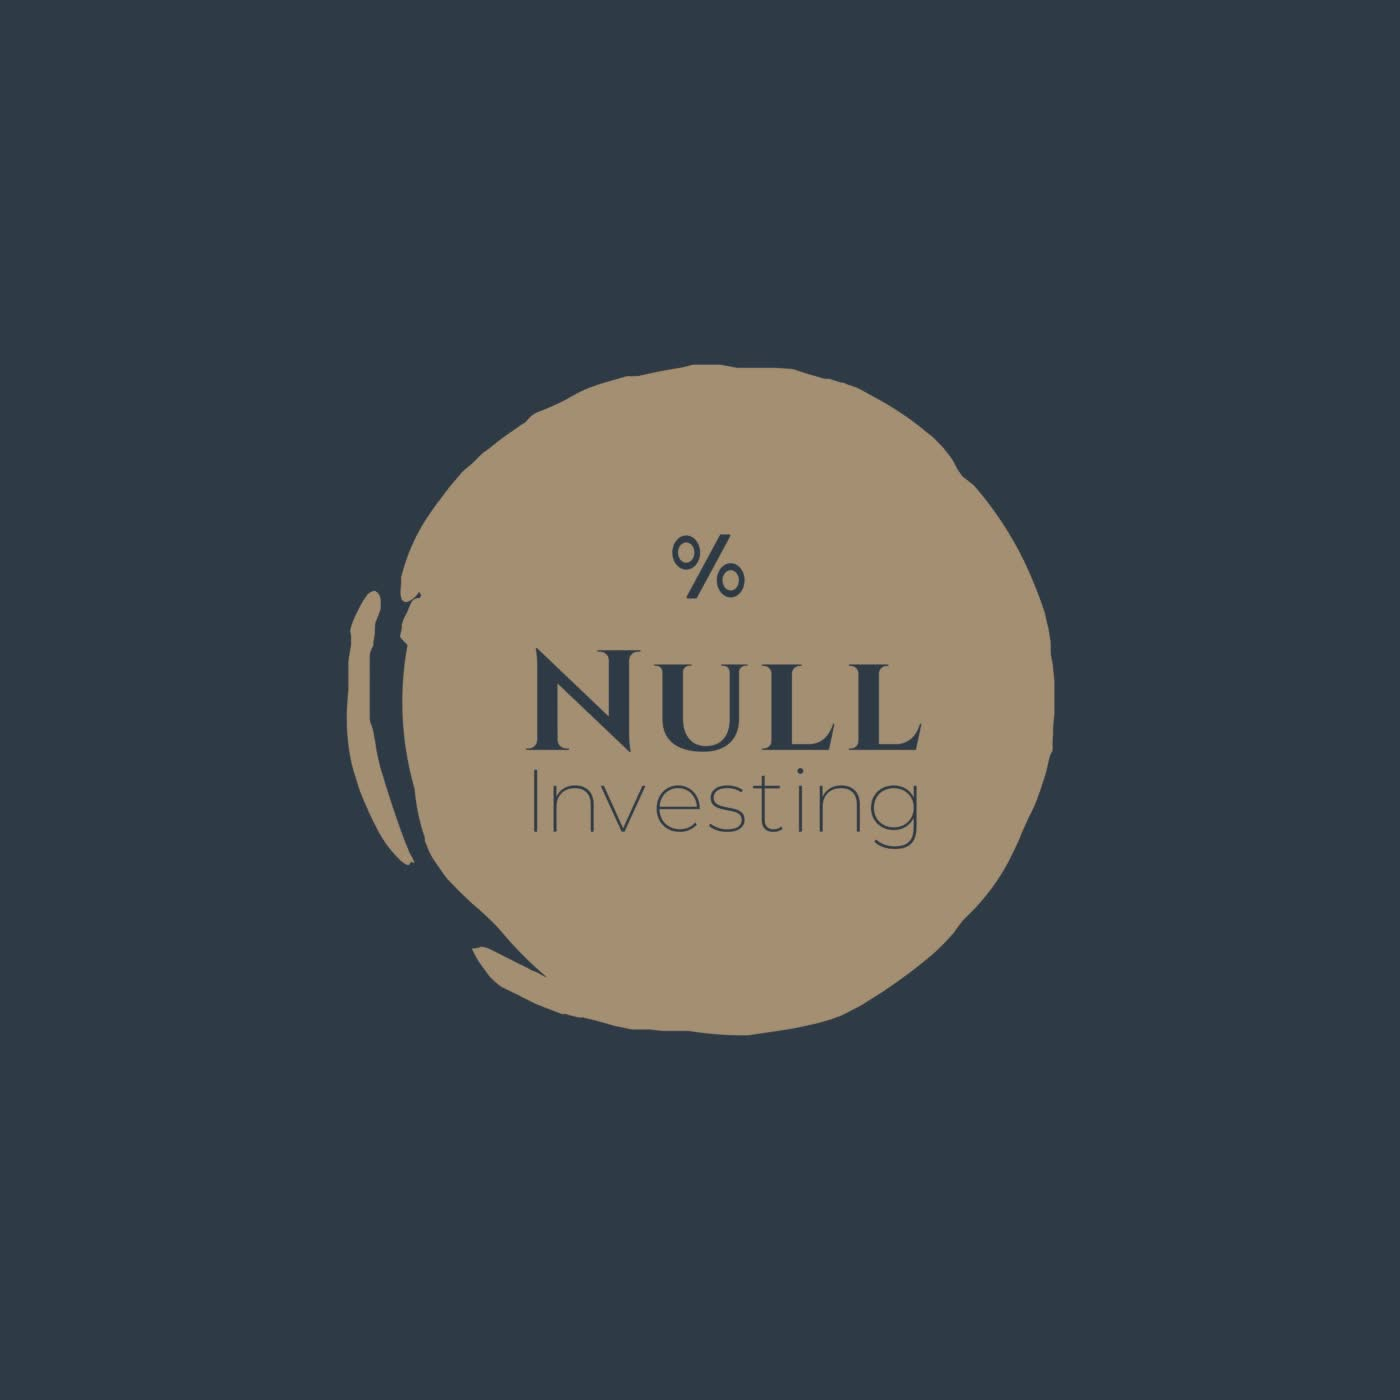 NULL Investing